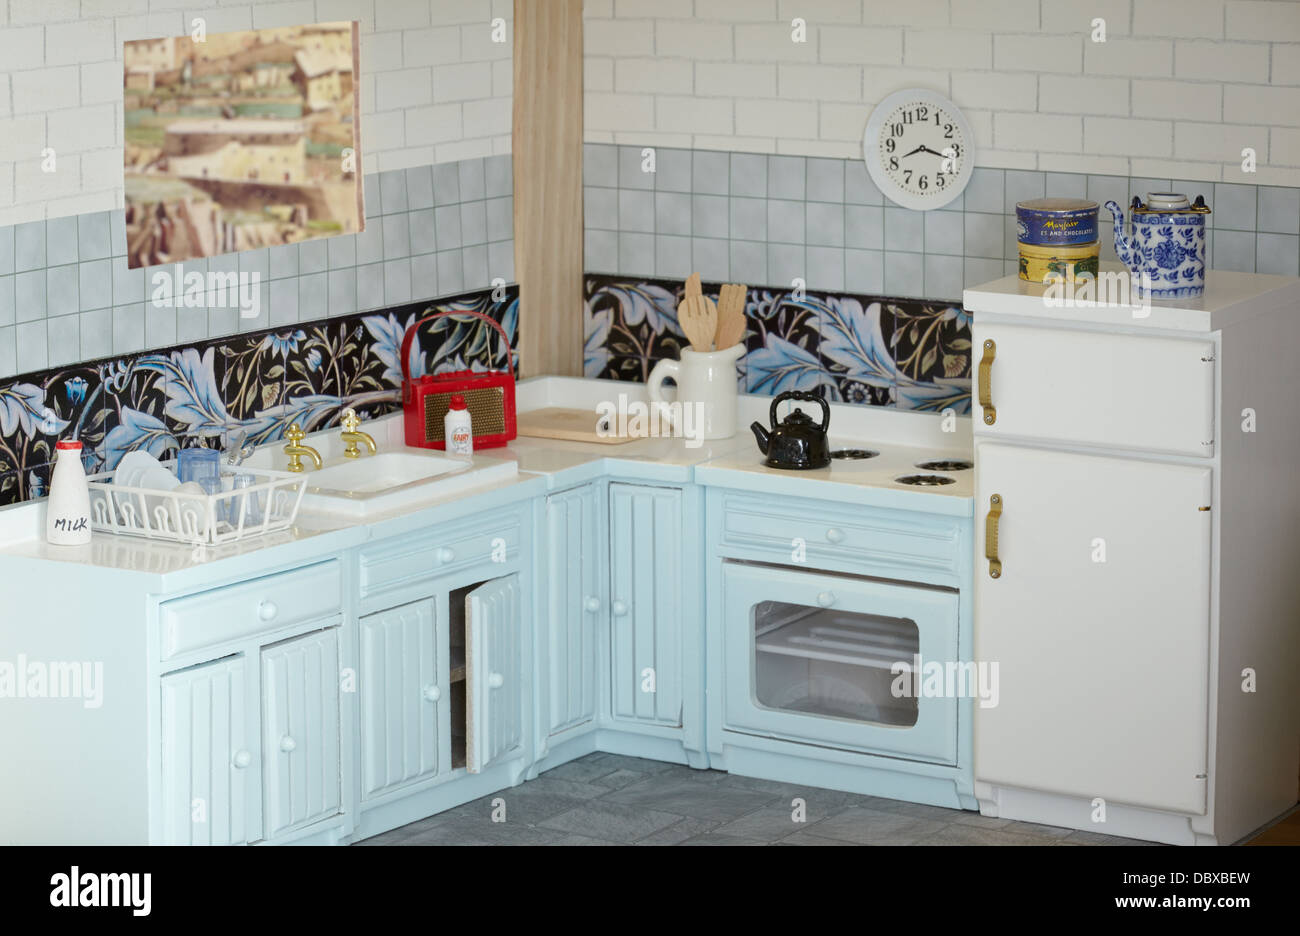 Dolls Kitchen Stock Photos & Dolls Kitchen Stock Images - Alamy